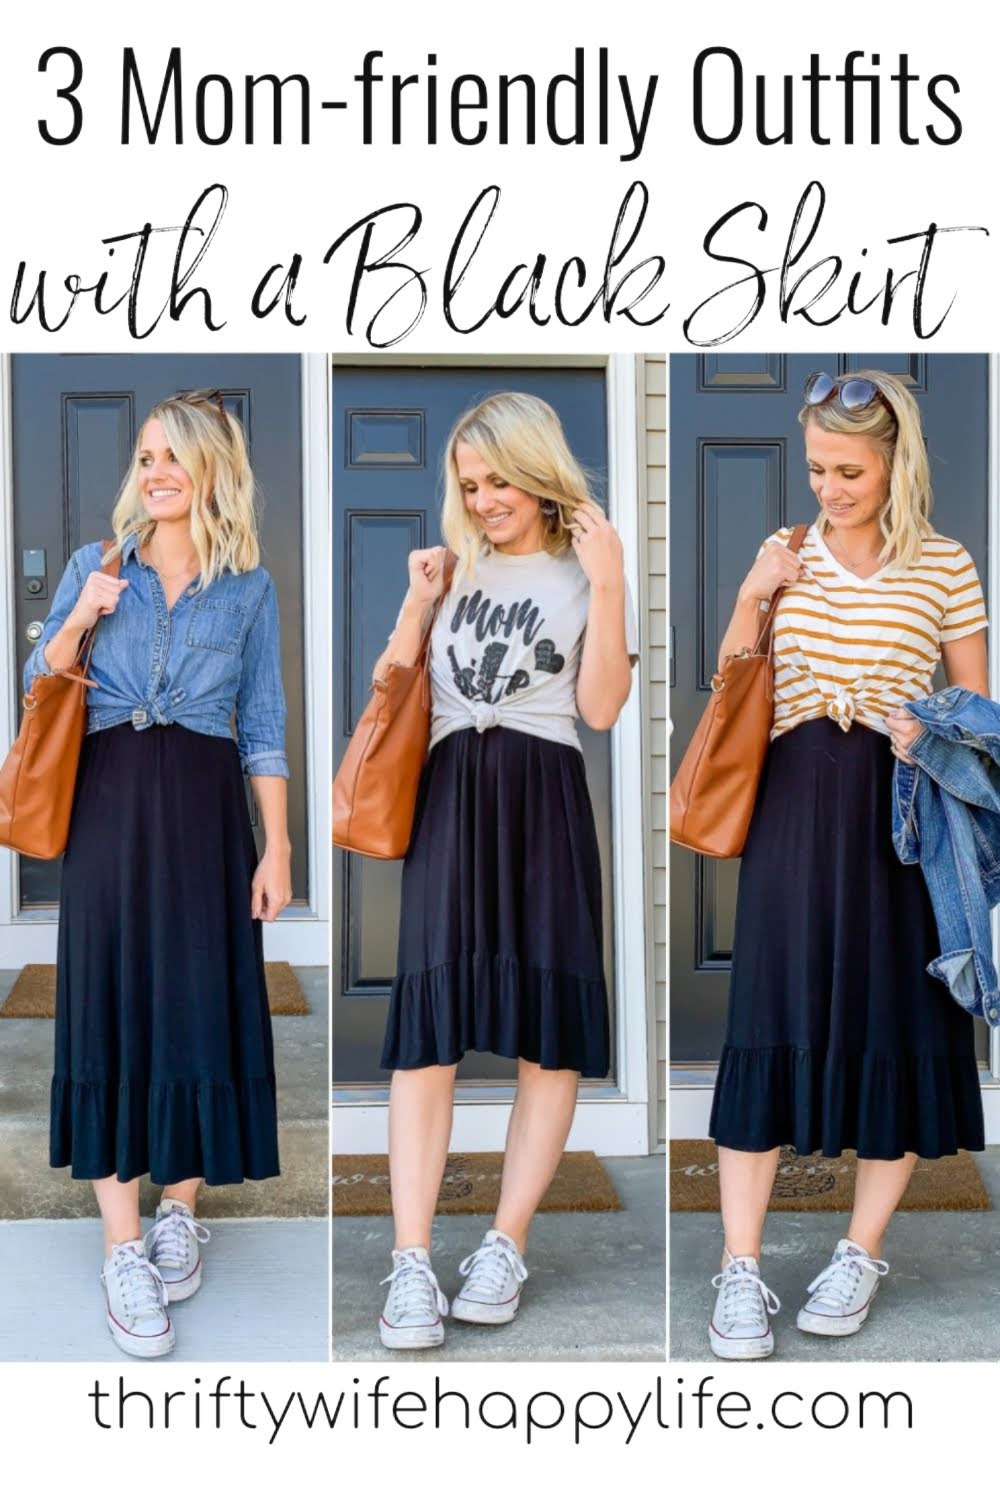 3 Mom-Friendly Outfits with a Black Skirt